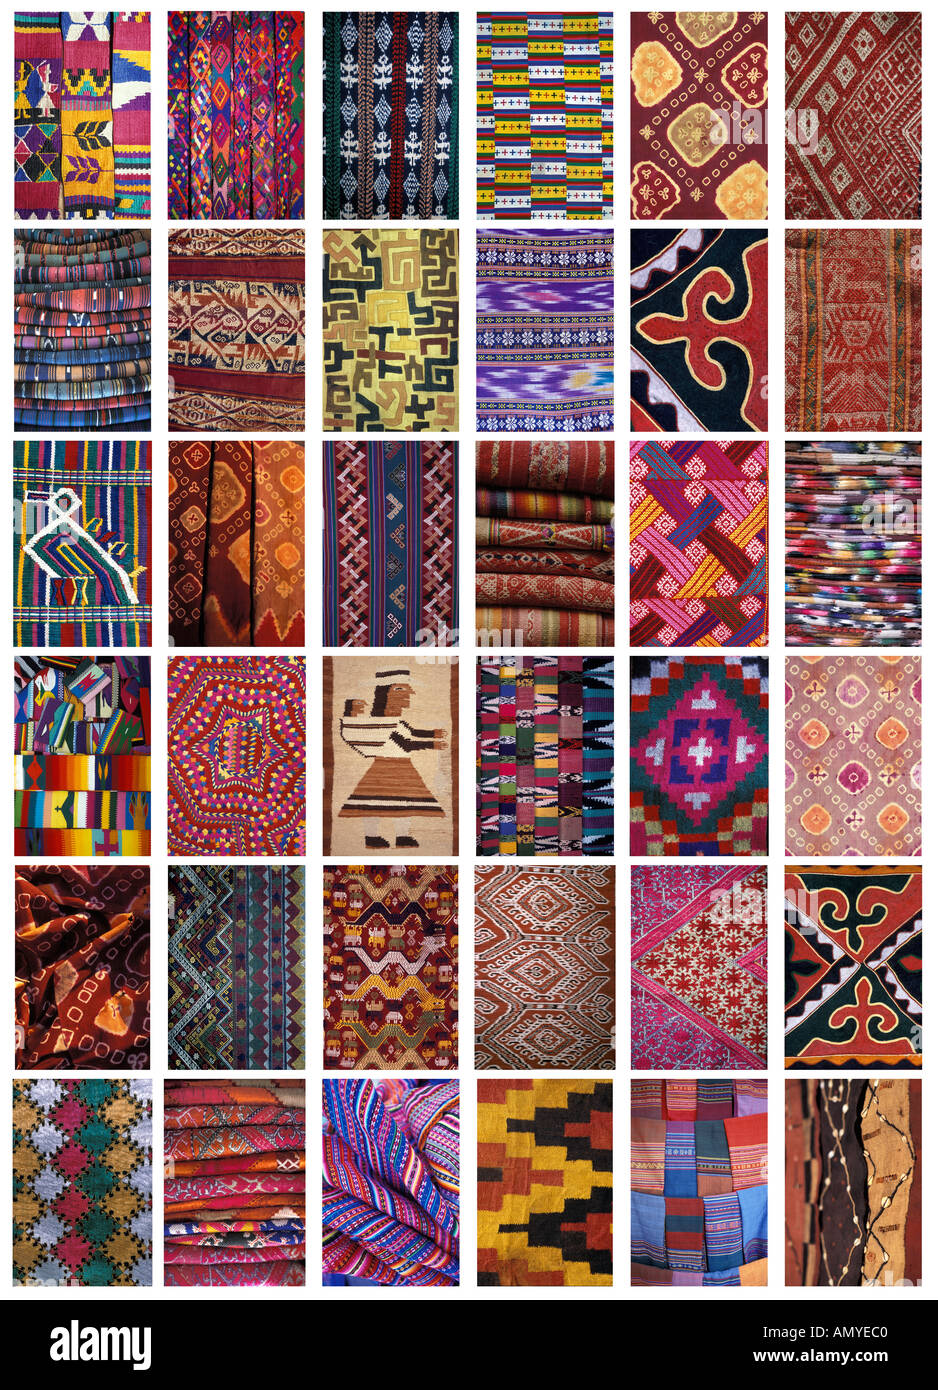 Collage of 36 textile patterns from around the world Asia and Latin America Large format image - Stock Image